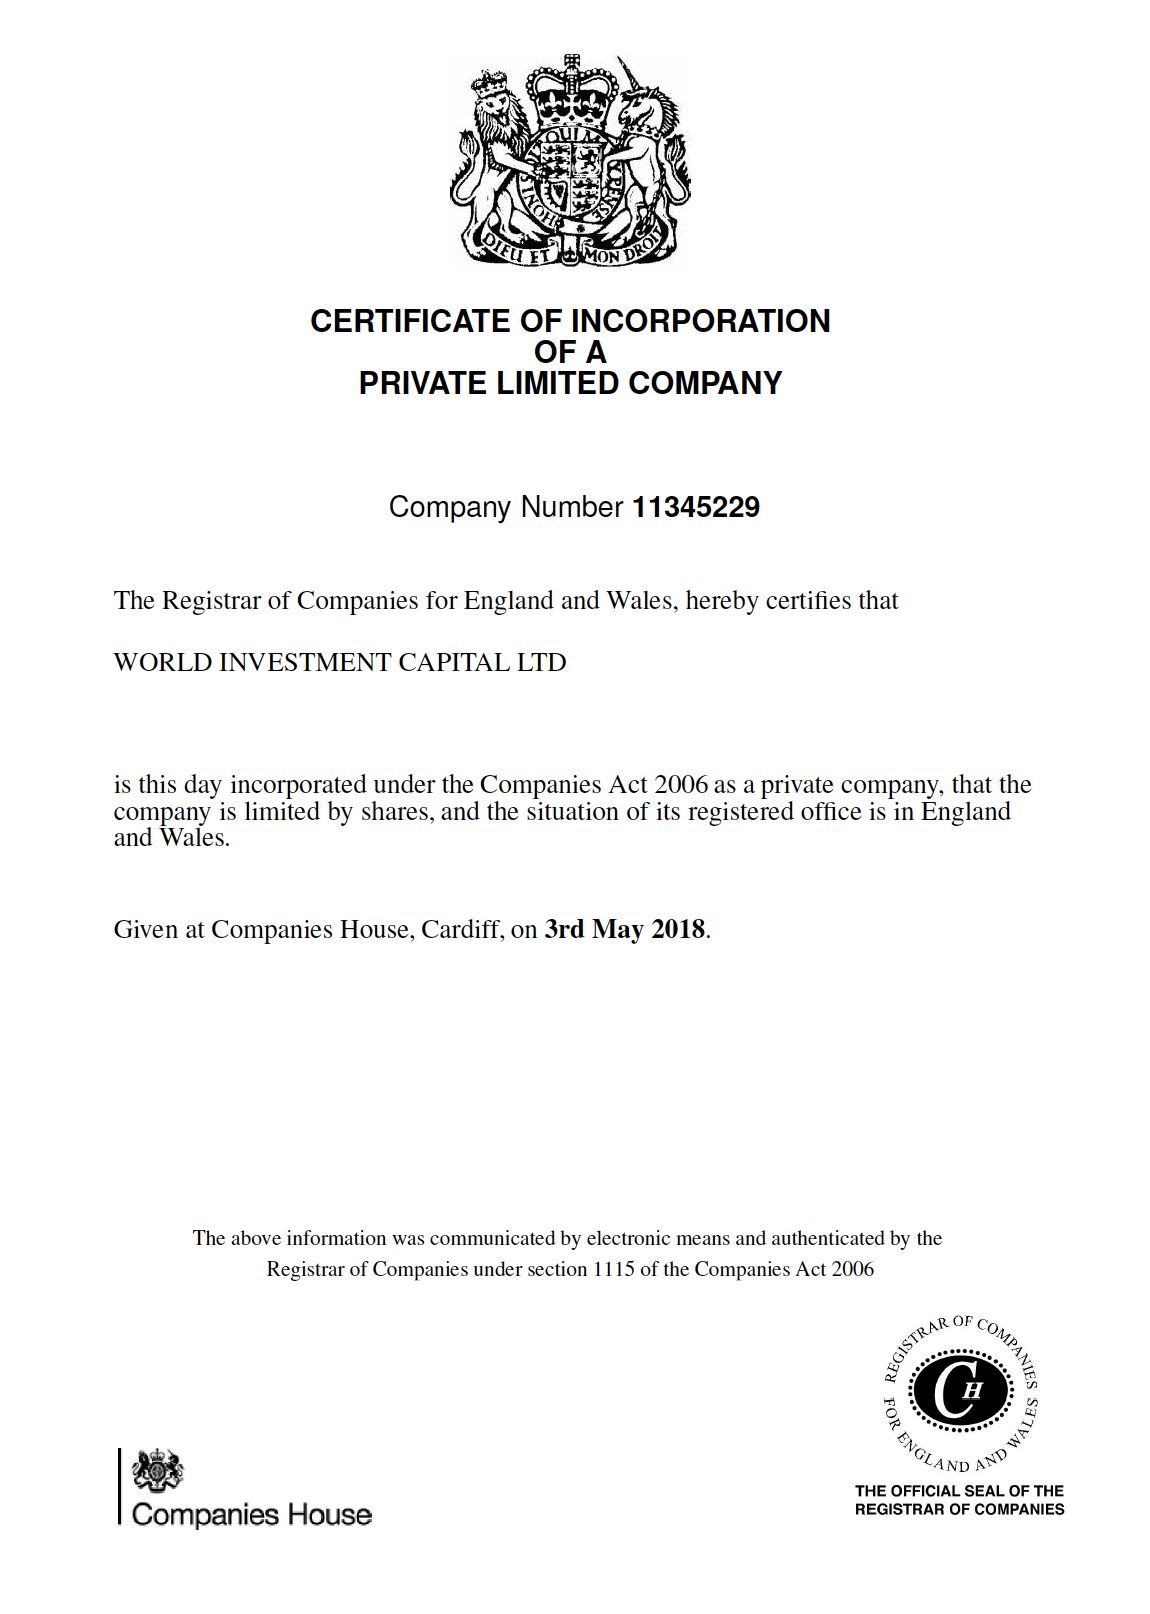 CERTIFICATE OF INCORPORATION OF A PRIVATE LIMITED COMPANY